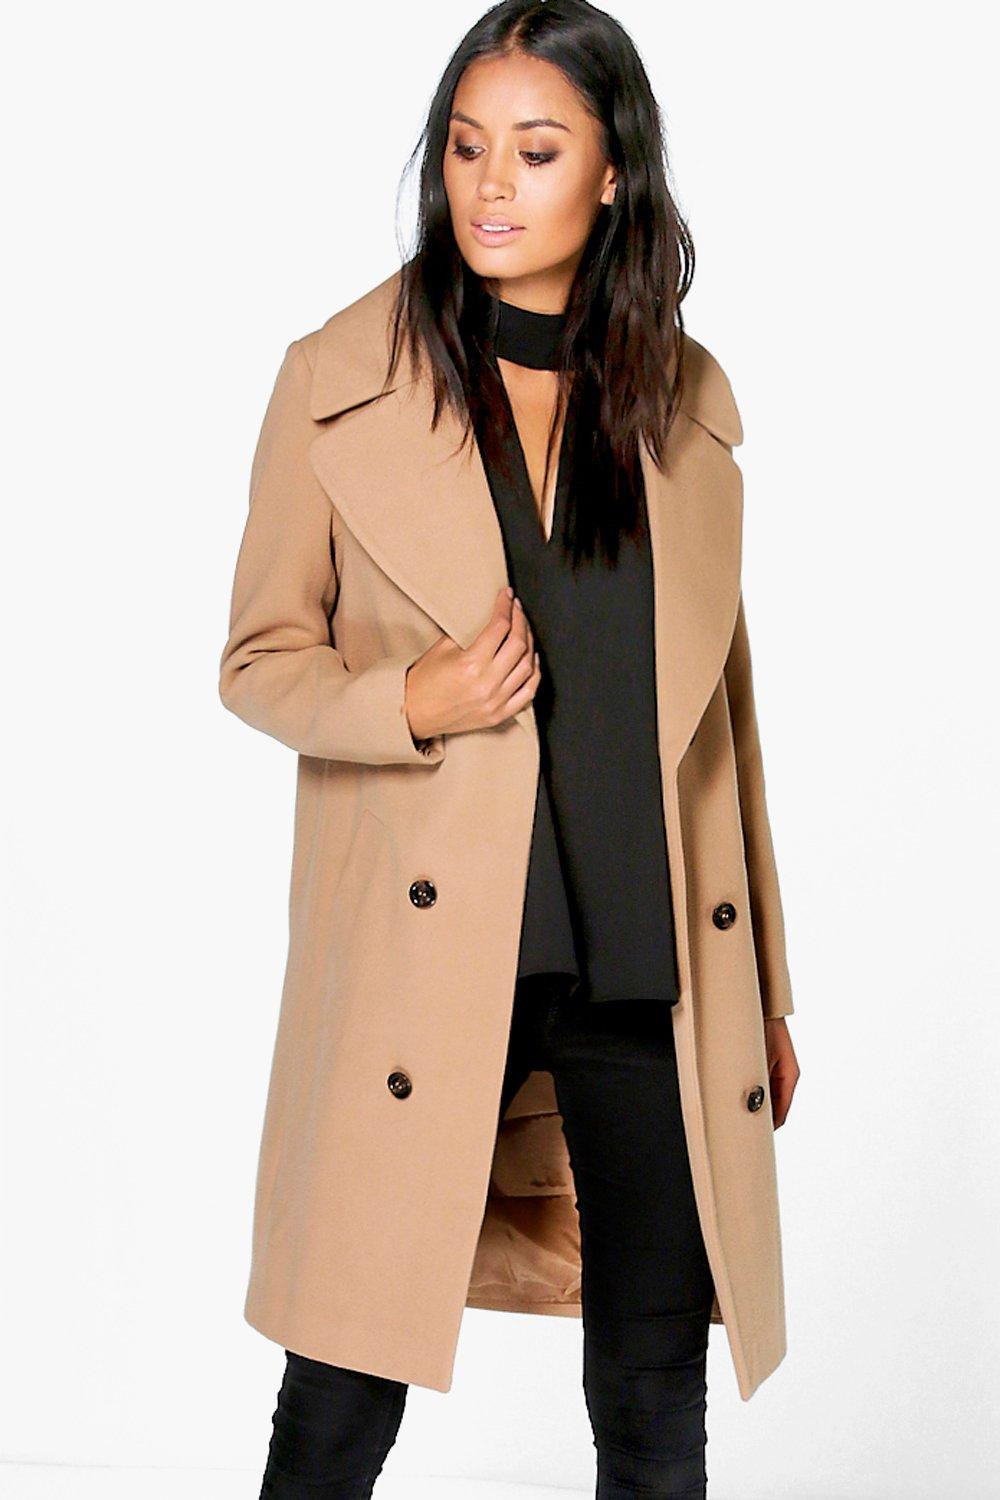 Oversized Collar Double Breasted Coat - camel